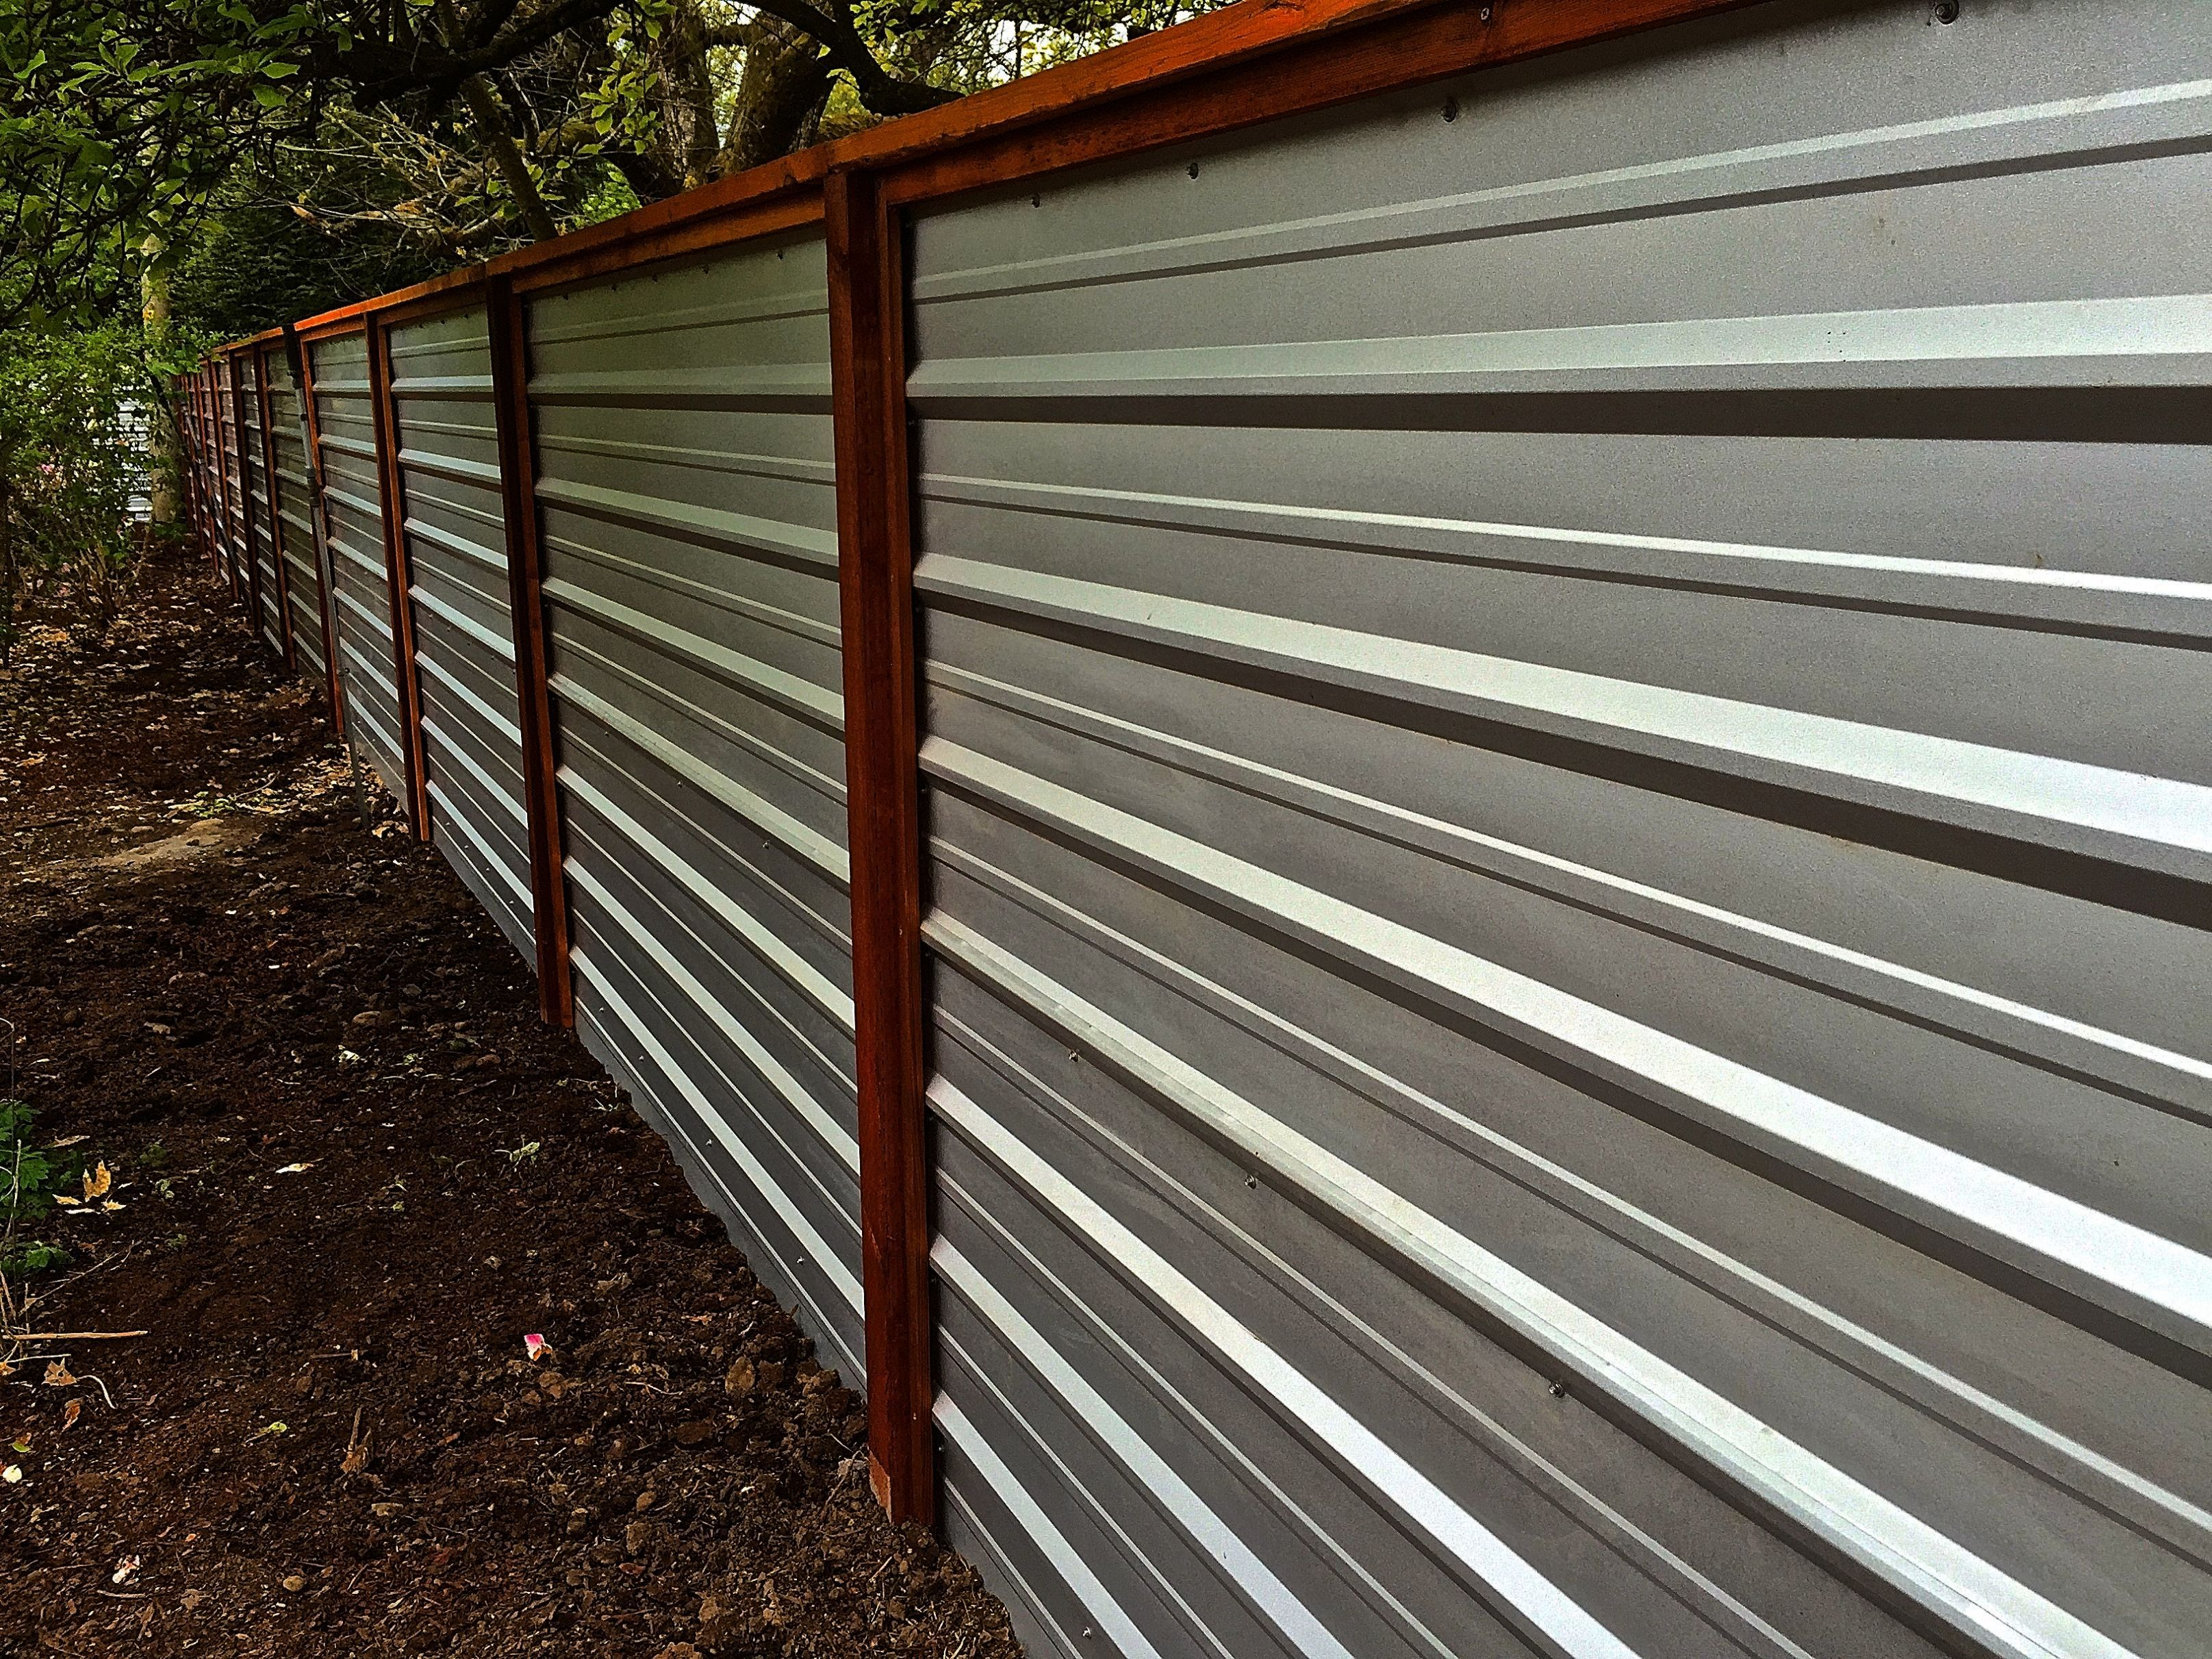 A Galvanized Corrugated Metal Fence Creates A Clean Modern Edge